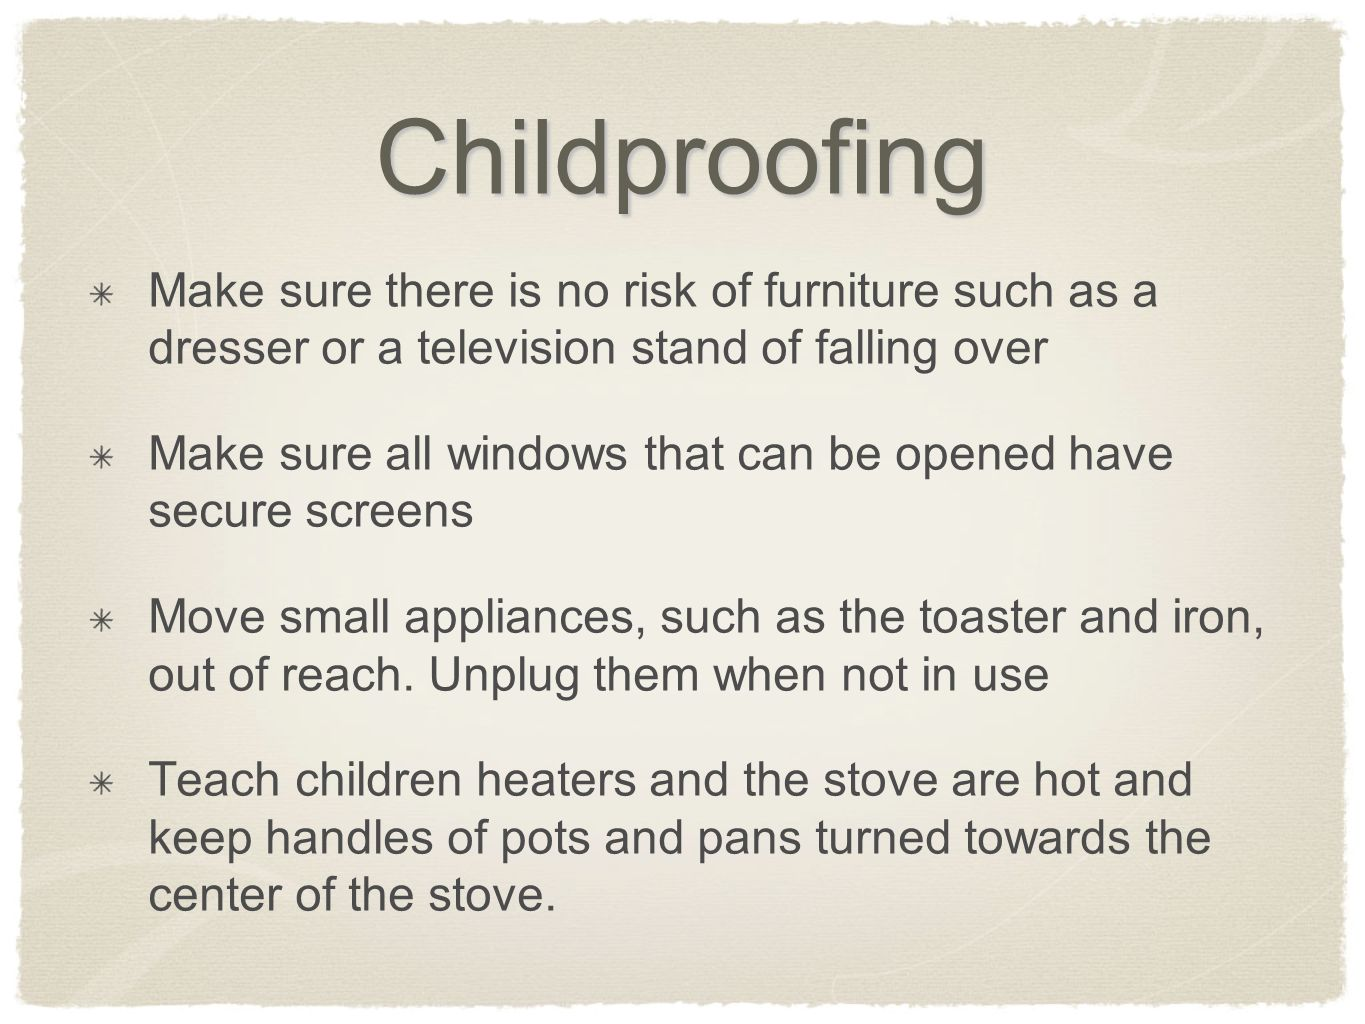 Childproofing Make sure there is no risk of furniture such as a dresser or a television stand of falling over.